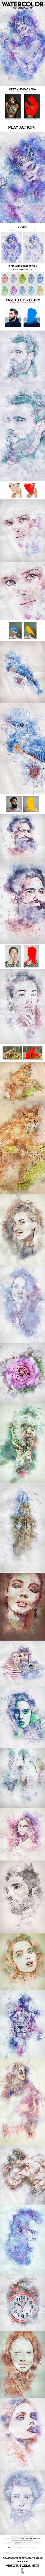 Transform your photography into realistic watercolor picture. Works perfectly with portraits or other photos. Watercolor Photoshop Action